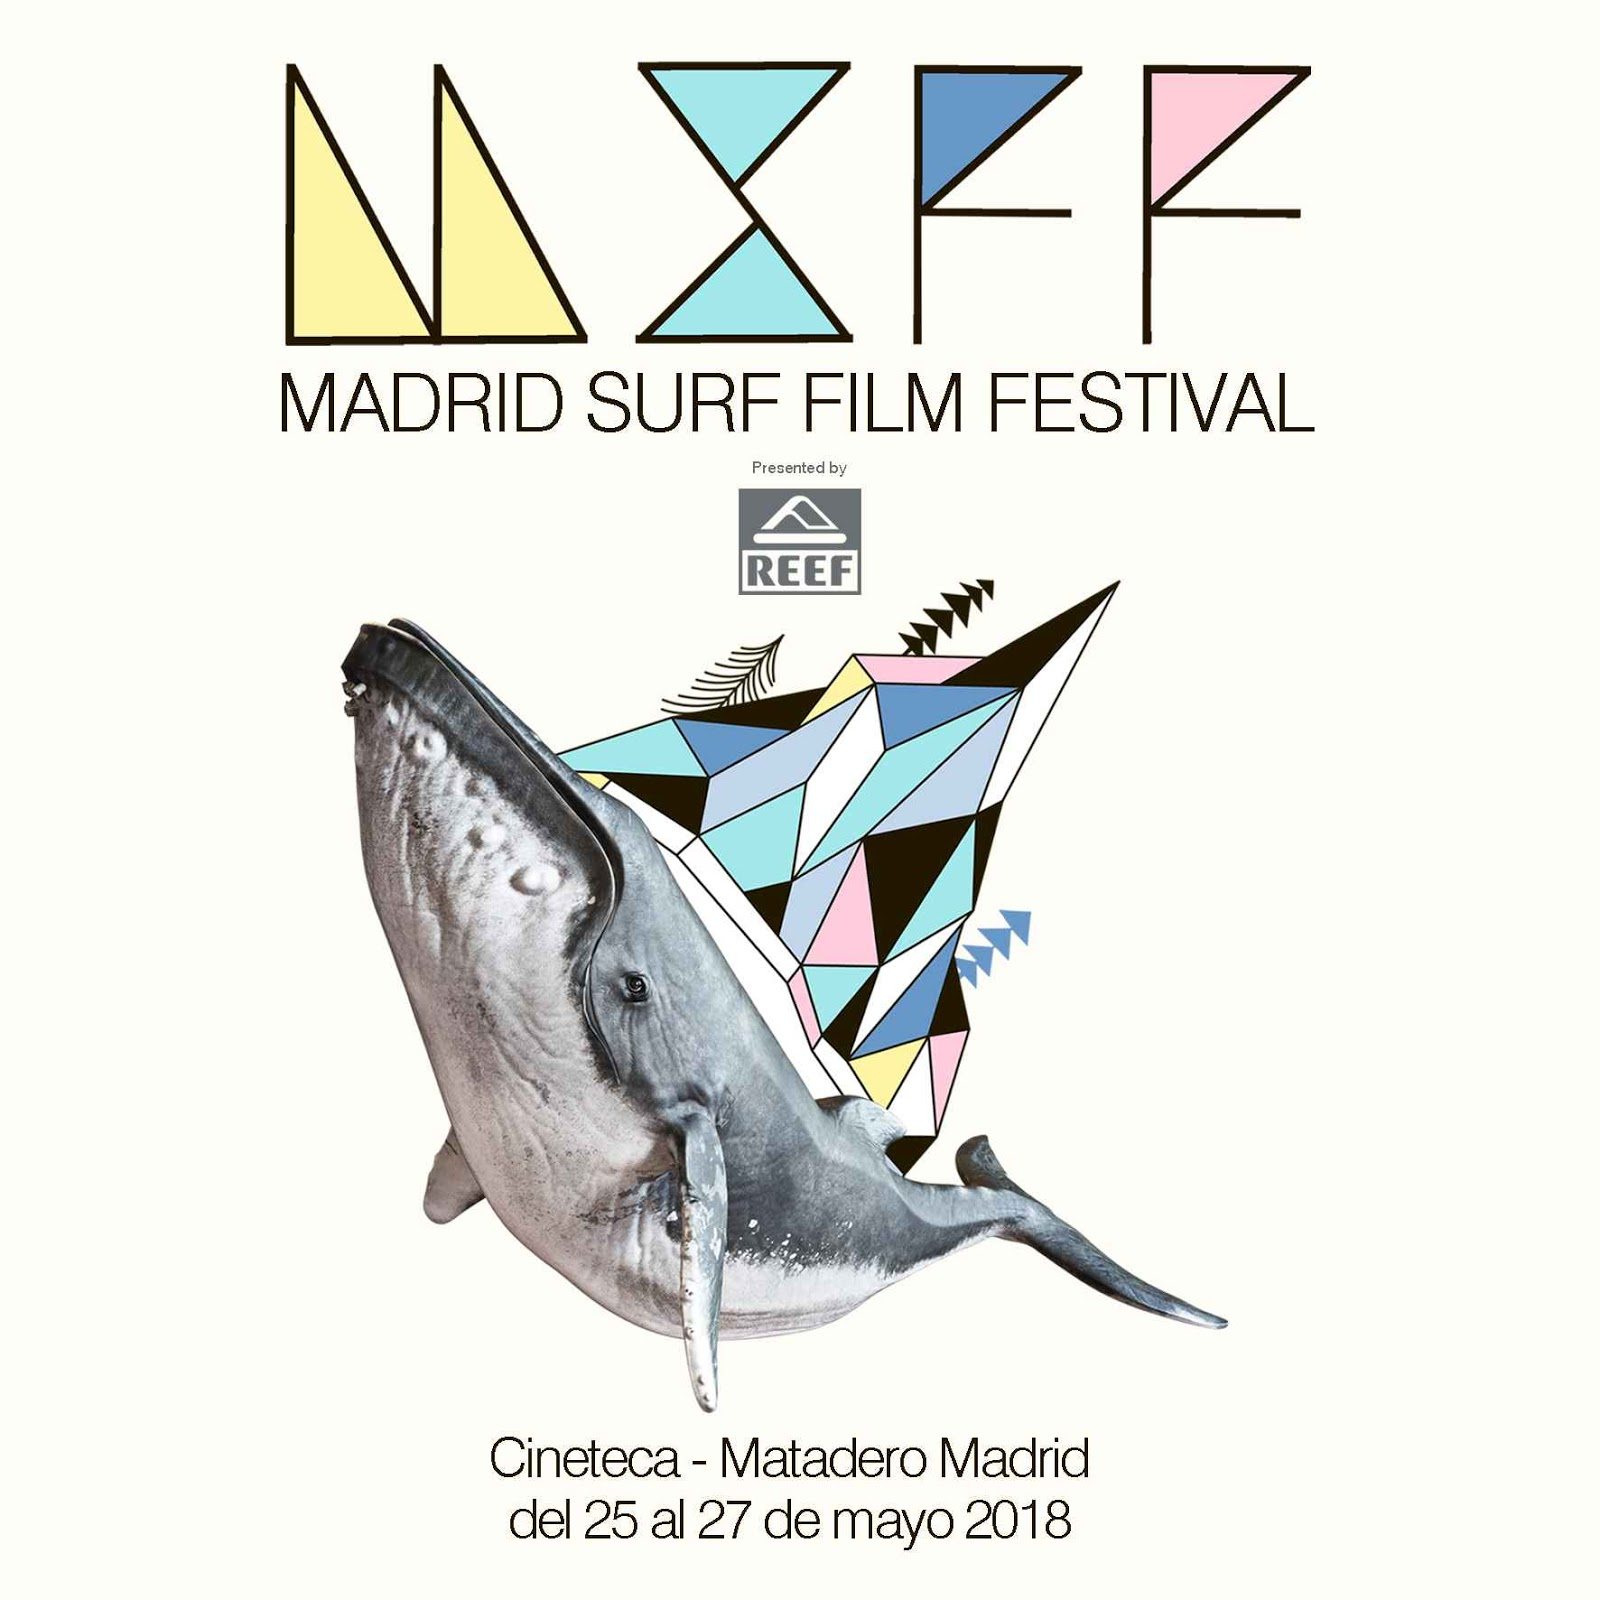 madrid surfilm festival cartel